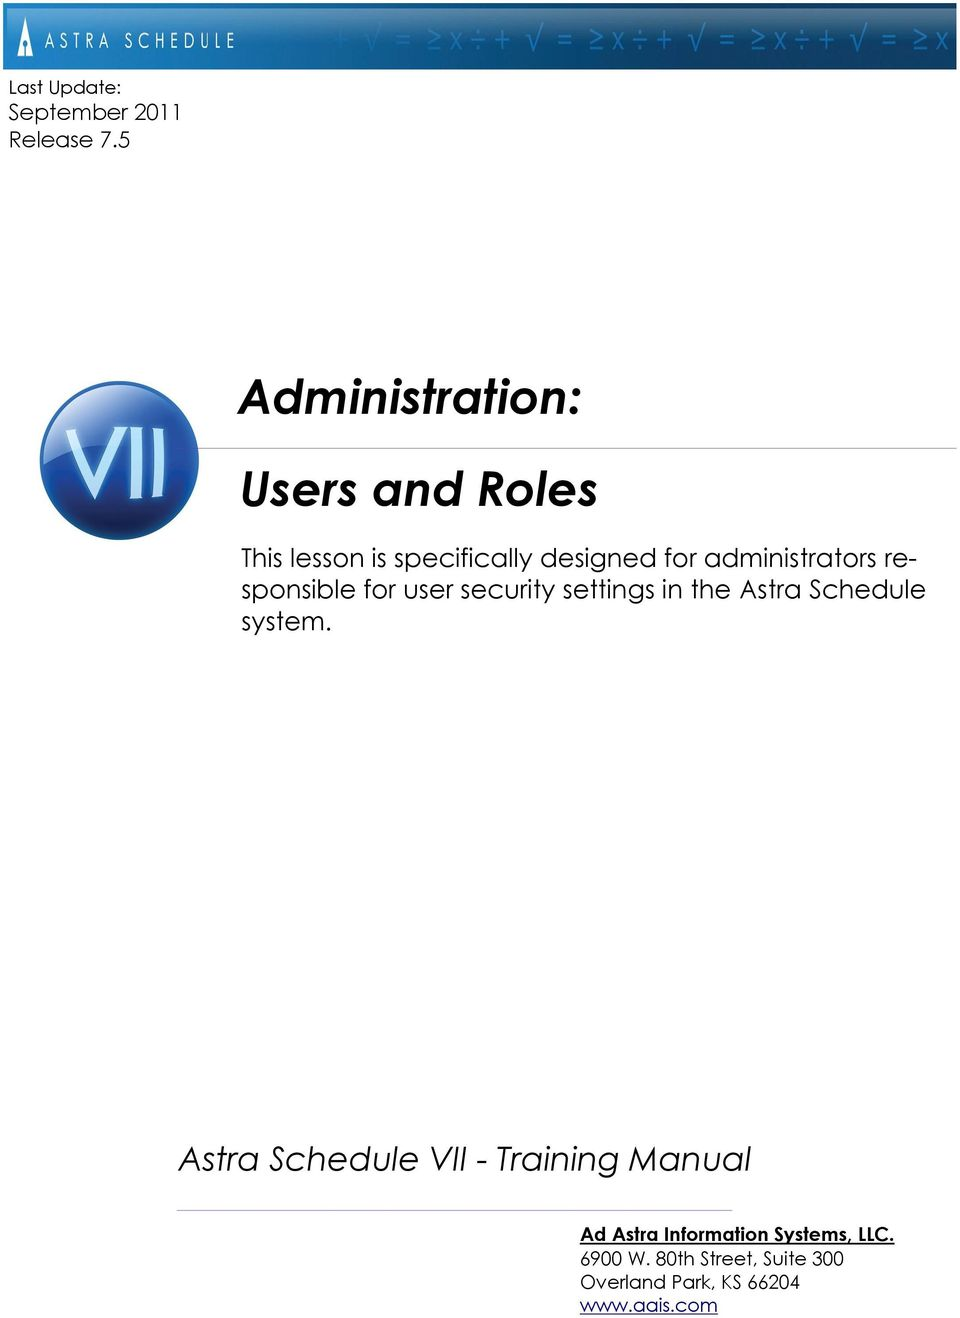 administrators responsible for user security settings in the Astra Schedule system.